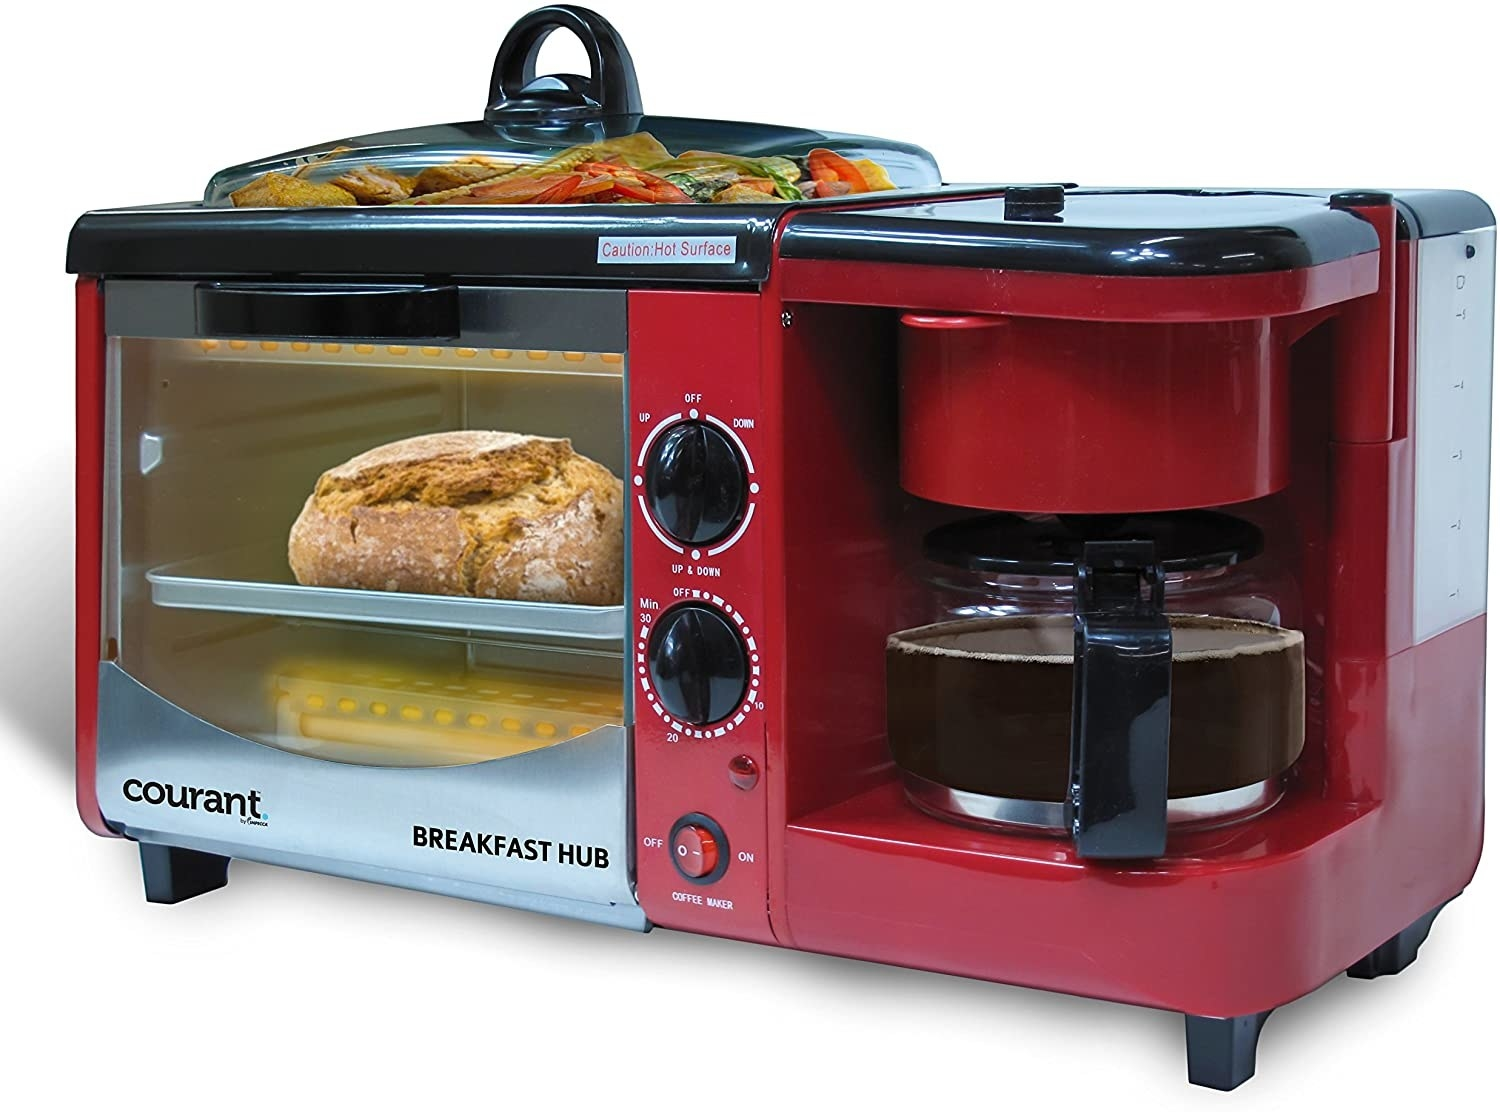 A toasting oven with a built-in coffeemaker on the side and a griddle on top with a lid